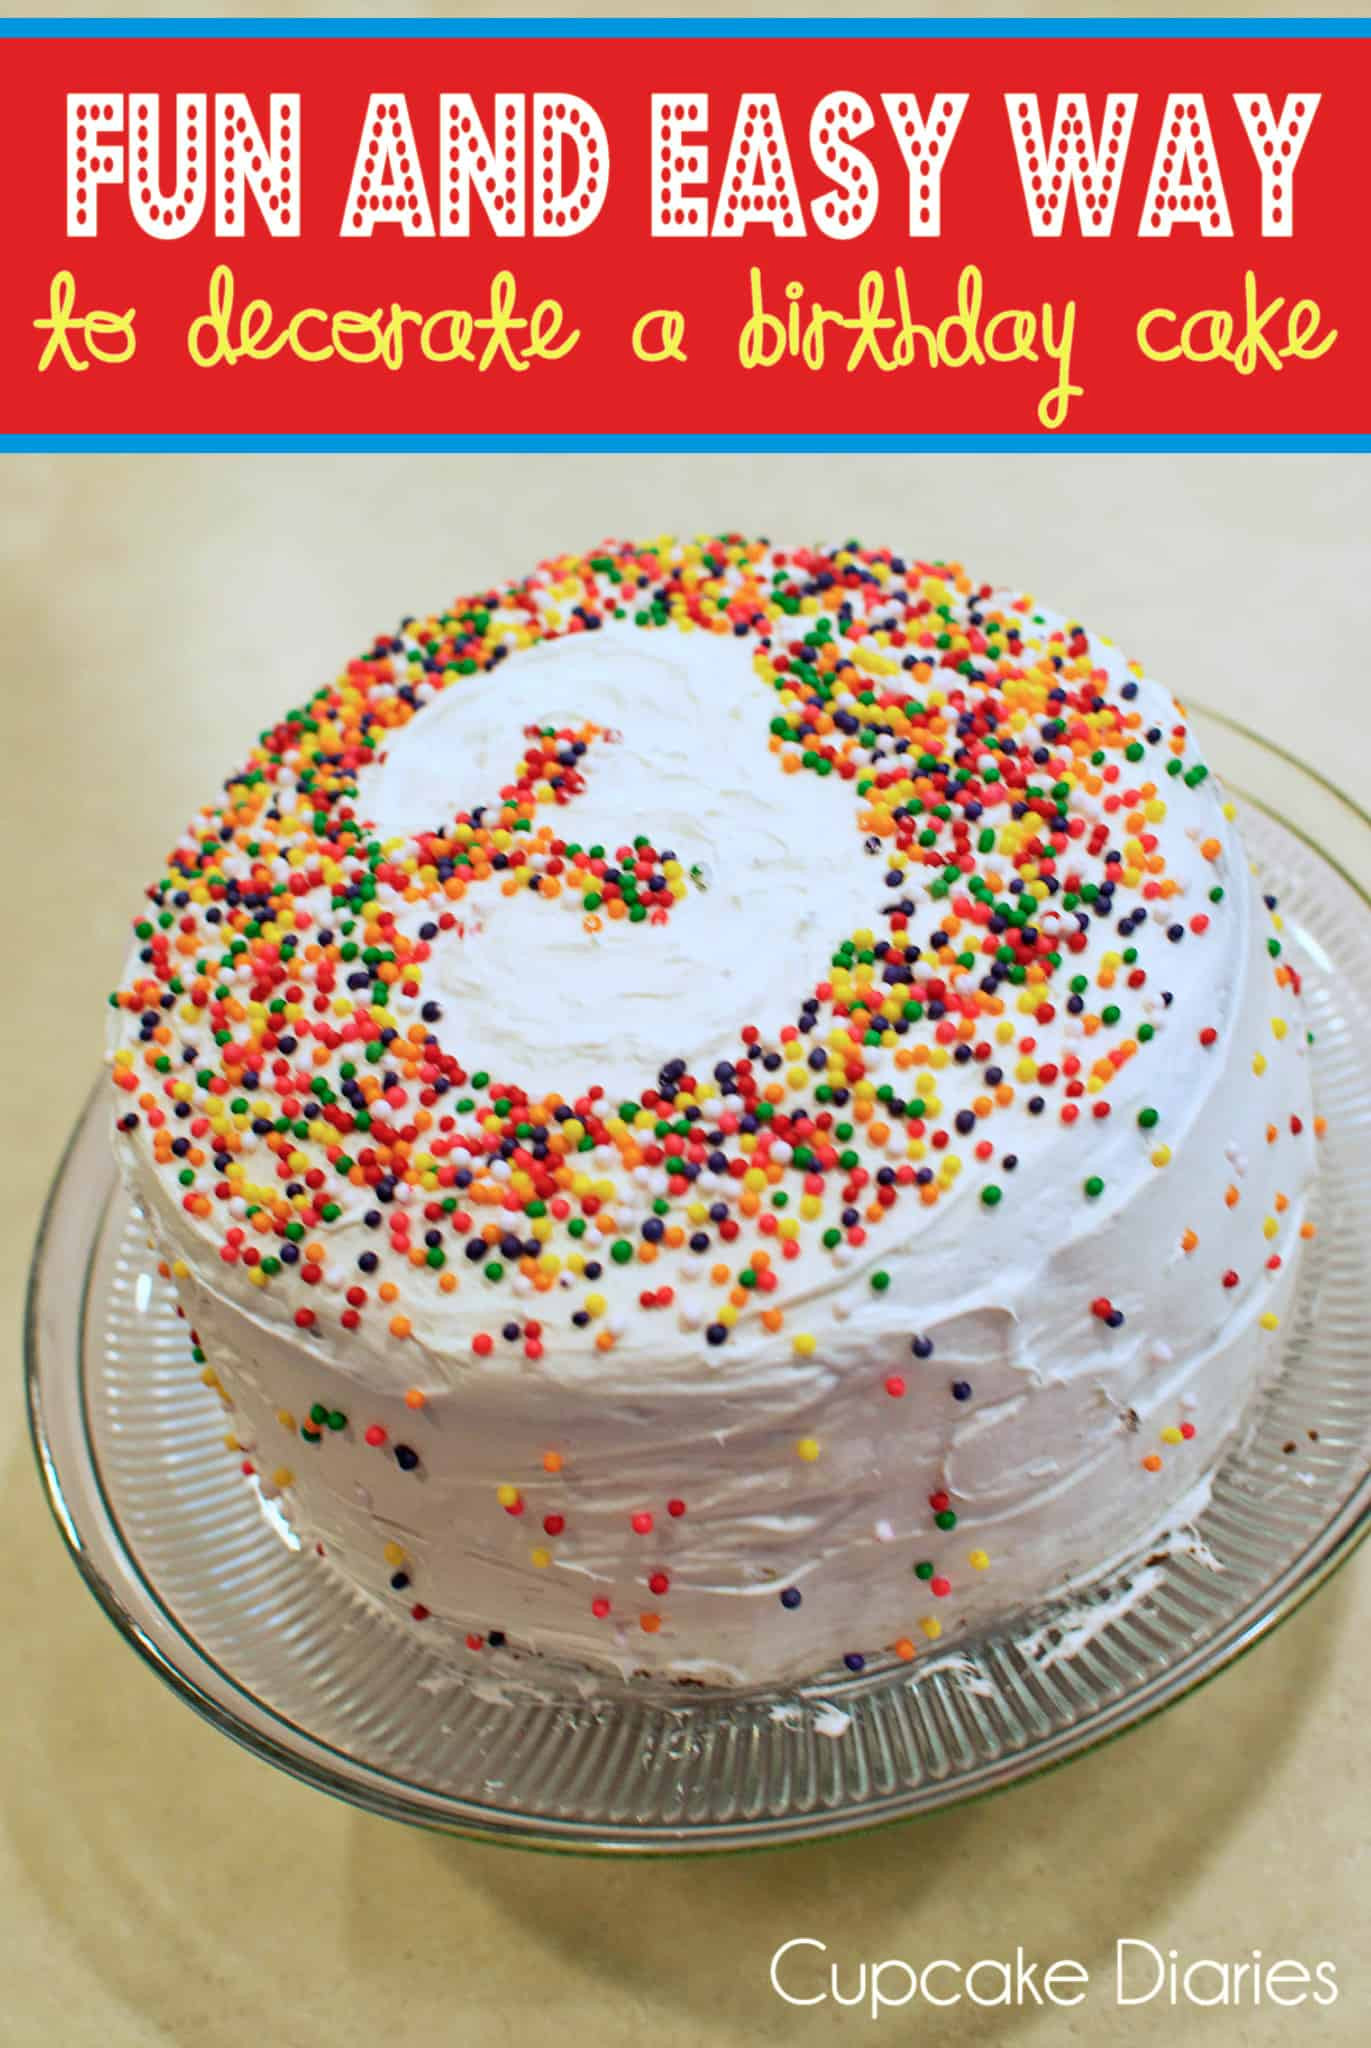 Cake Decorating Ideas For Birthday  Fun and Easy Way to Decorate a Birthday Cake Cupcake Diaries